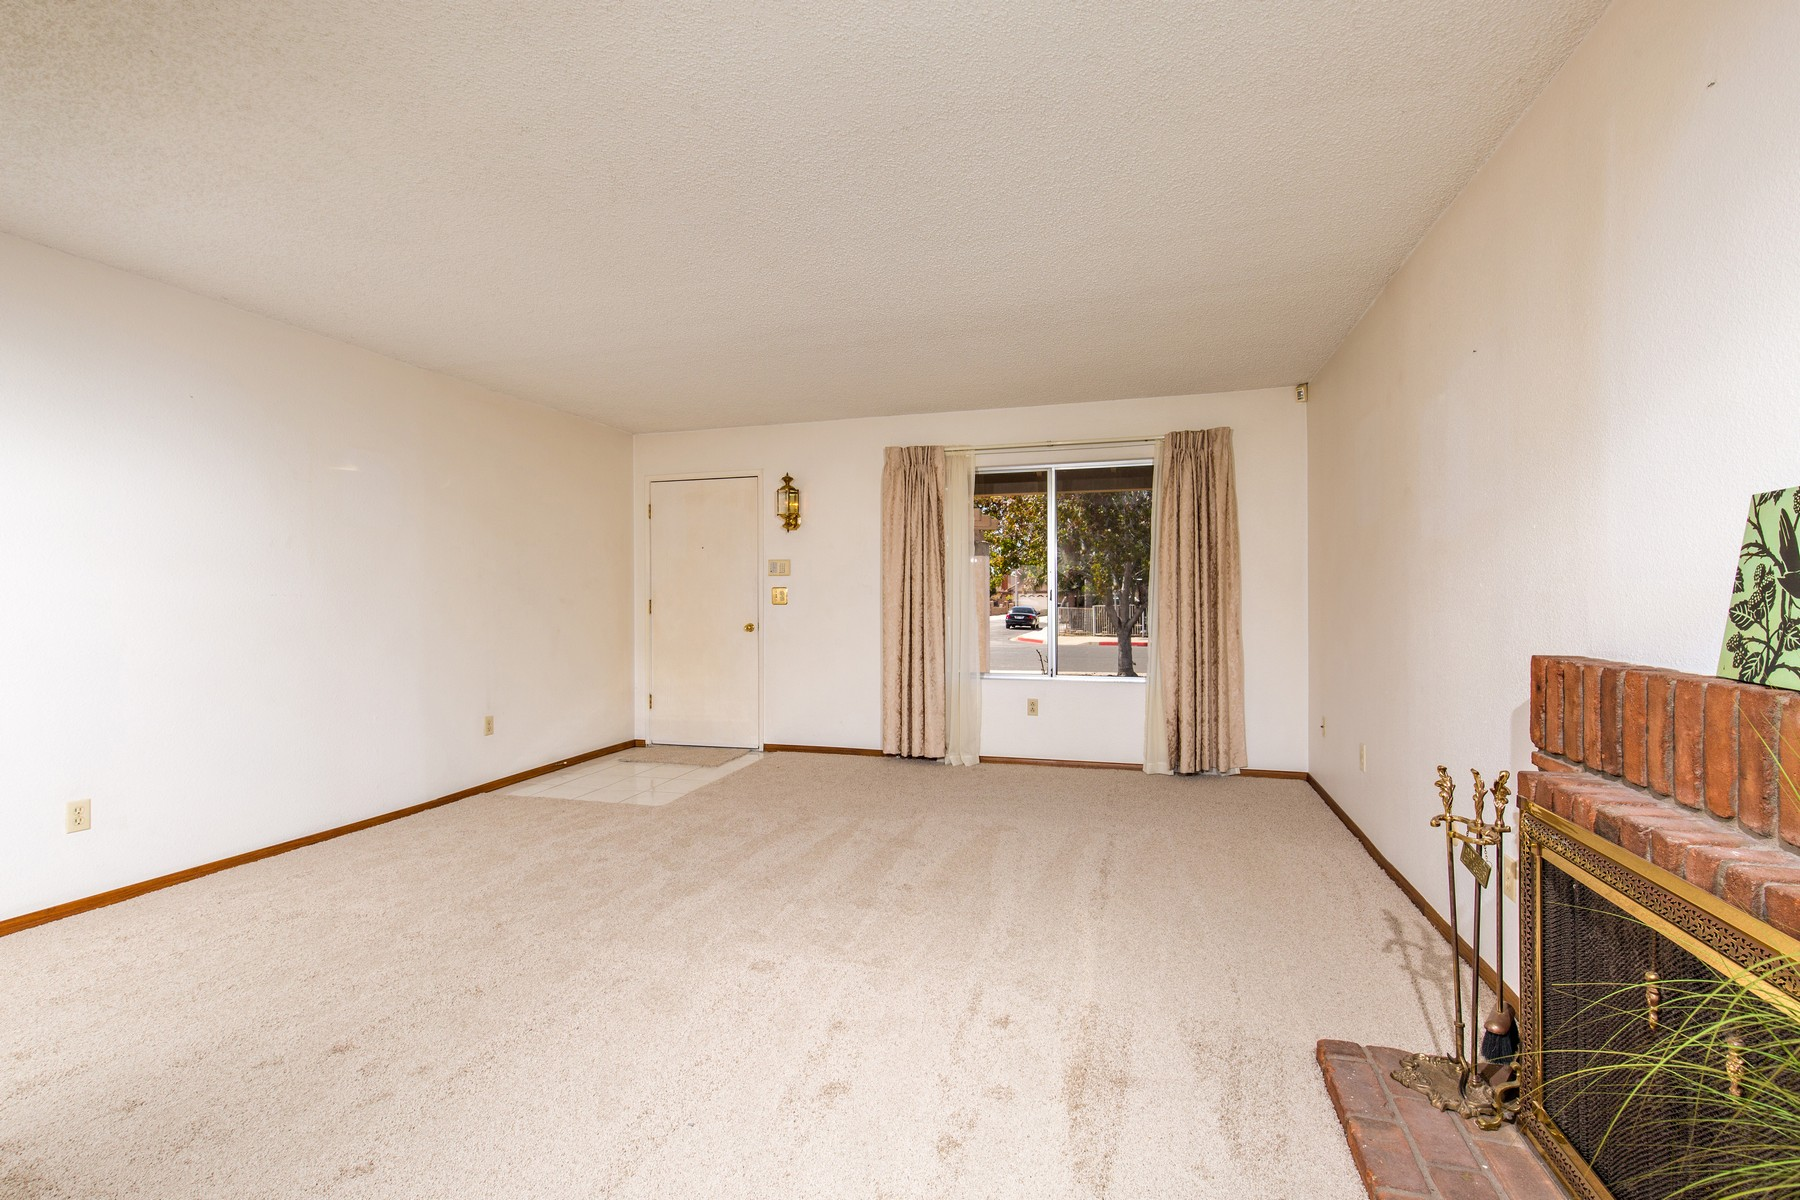 Additional photo for property listing at 2570 Biola Avenue  San Diego, California 92154 United States